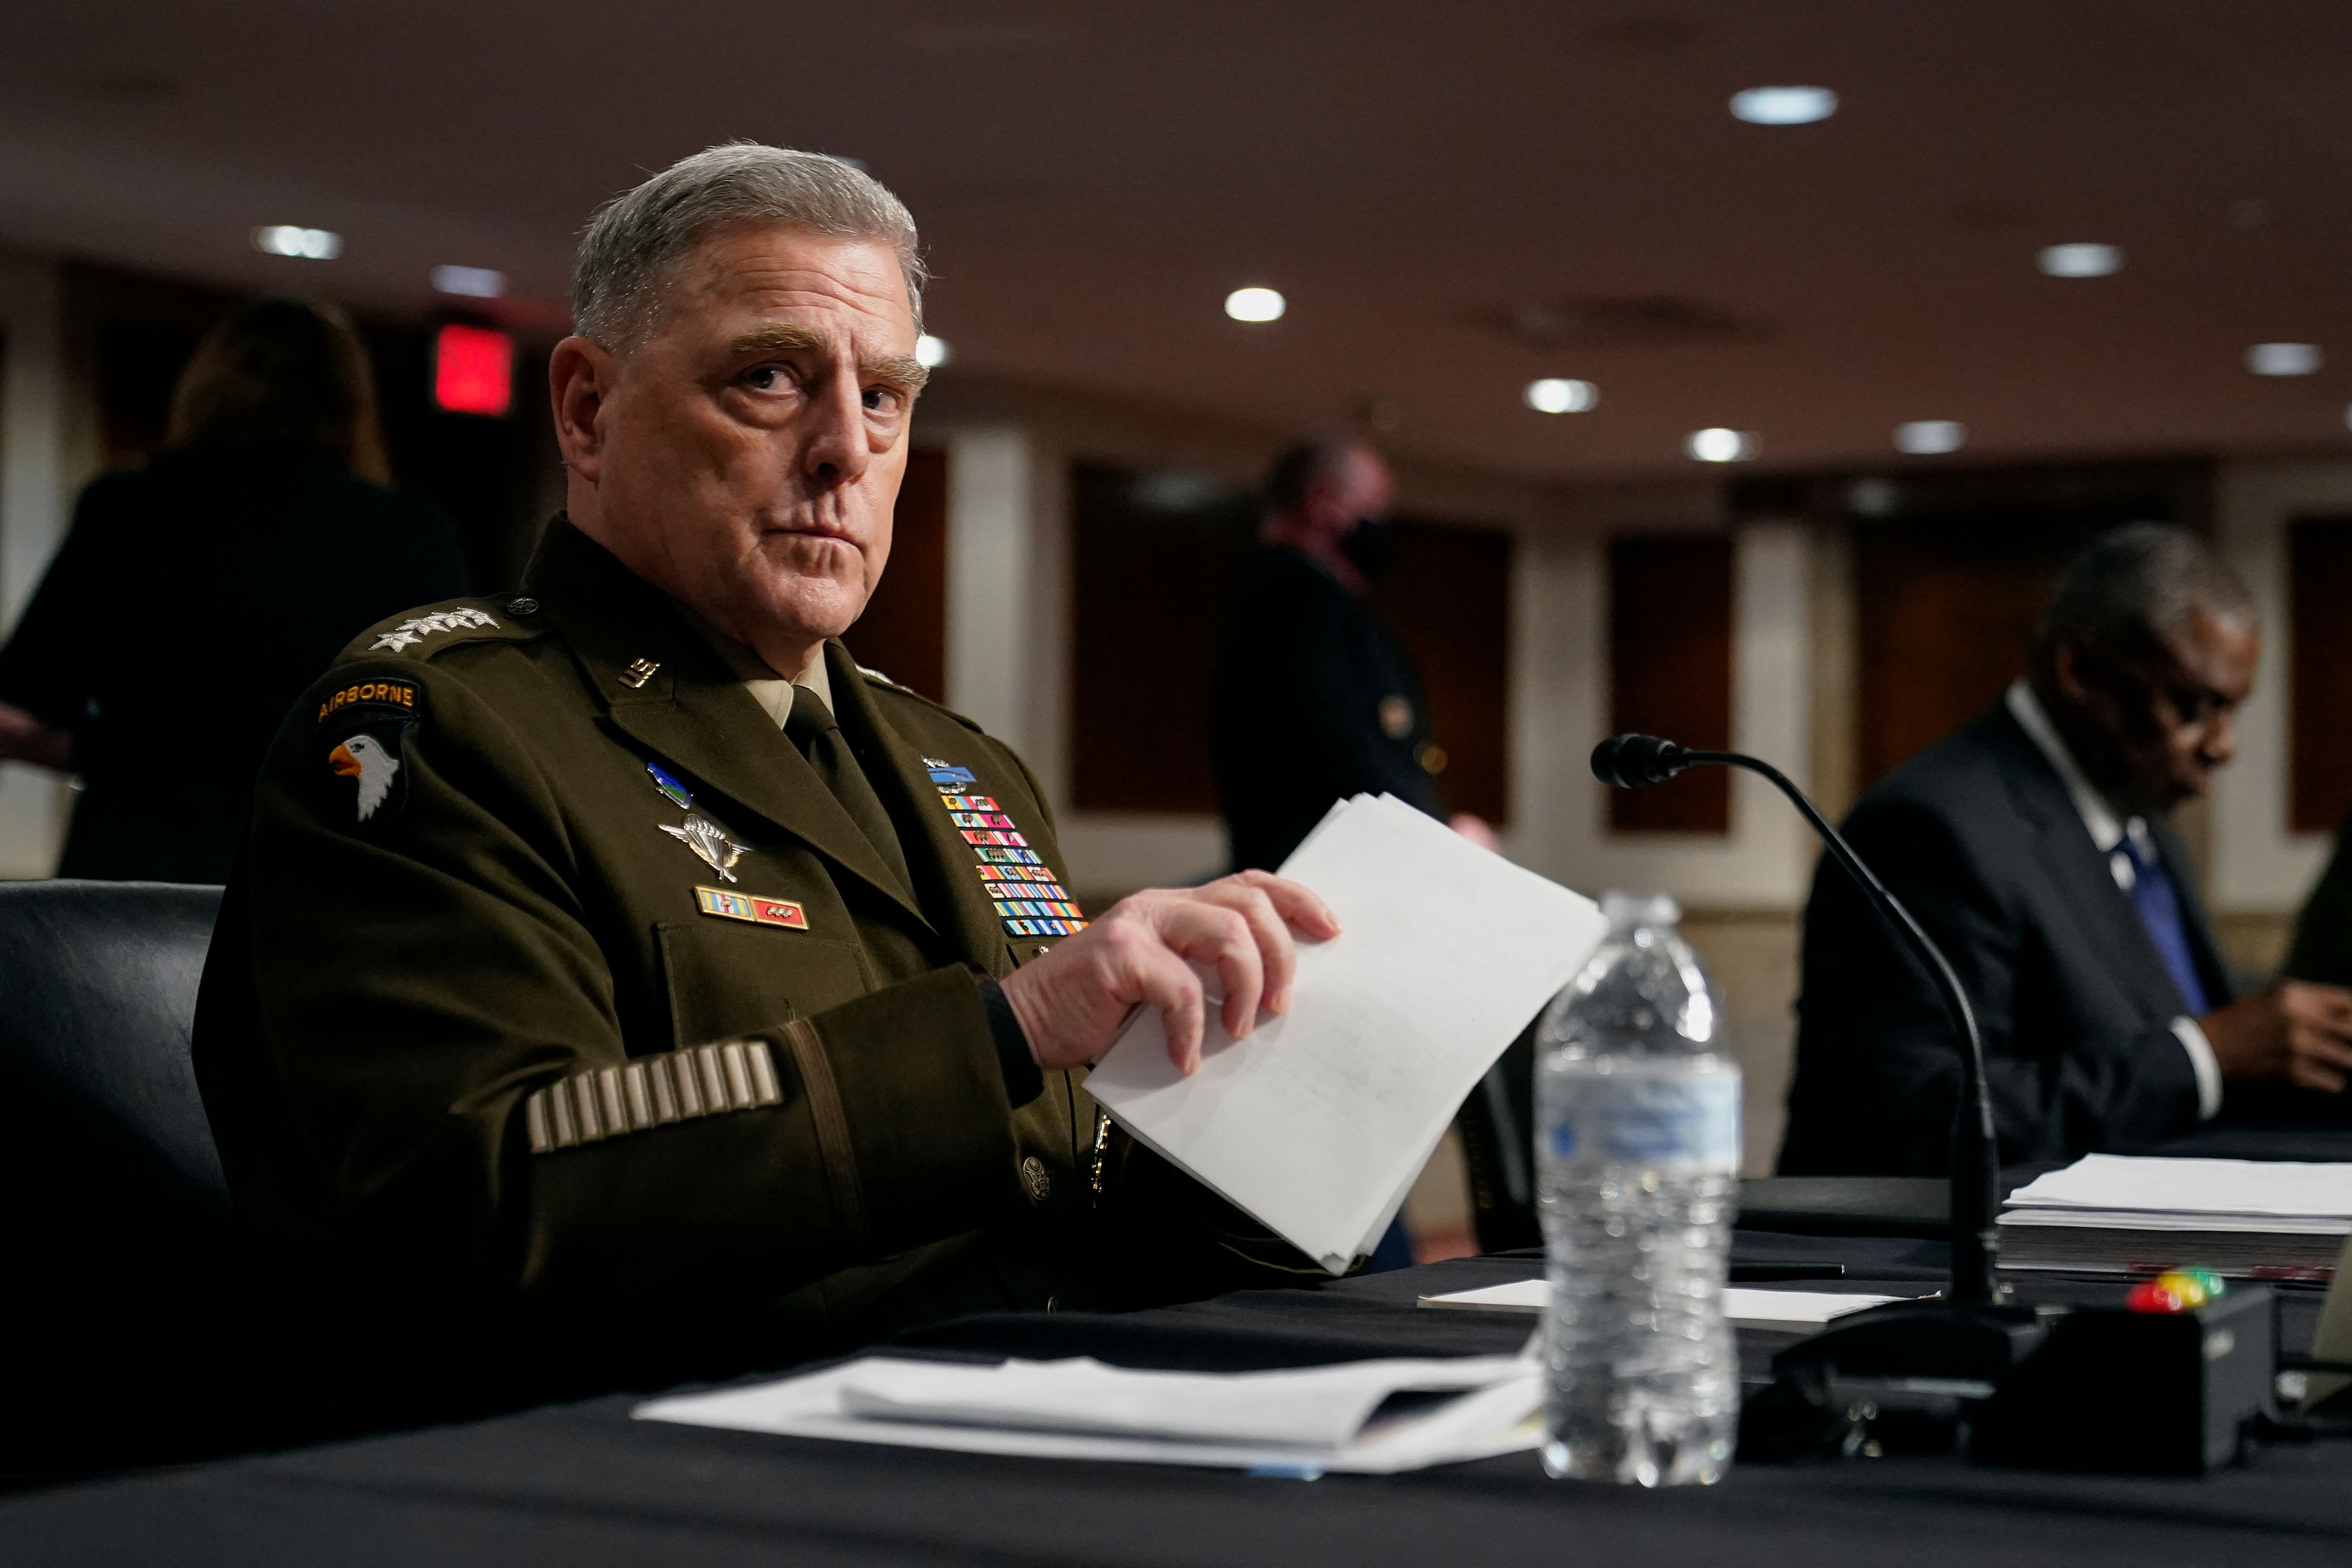 Chairman of the Joint Chiefs of Staff Gen. Mark Milley listens to a Senators question during a Senate Armed Services Committee hearing on the conclusion of military operations in Afghanistan and plans for future counterterrorism operations, on September 28, 2021, on Capitol Hill in Washington, DC. (Photo by PATRICK SEMANSKY/POOL/AFP via Getty Images)